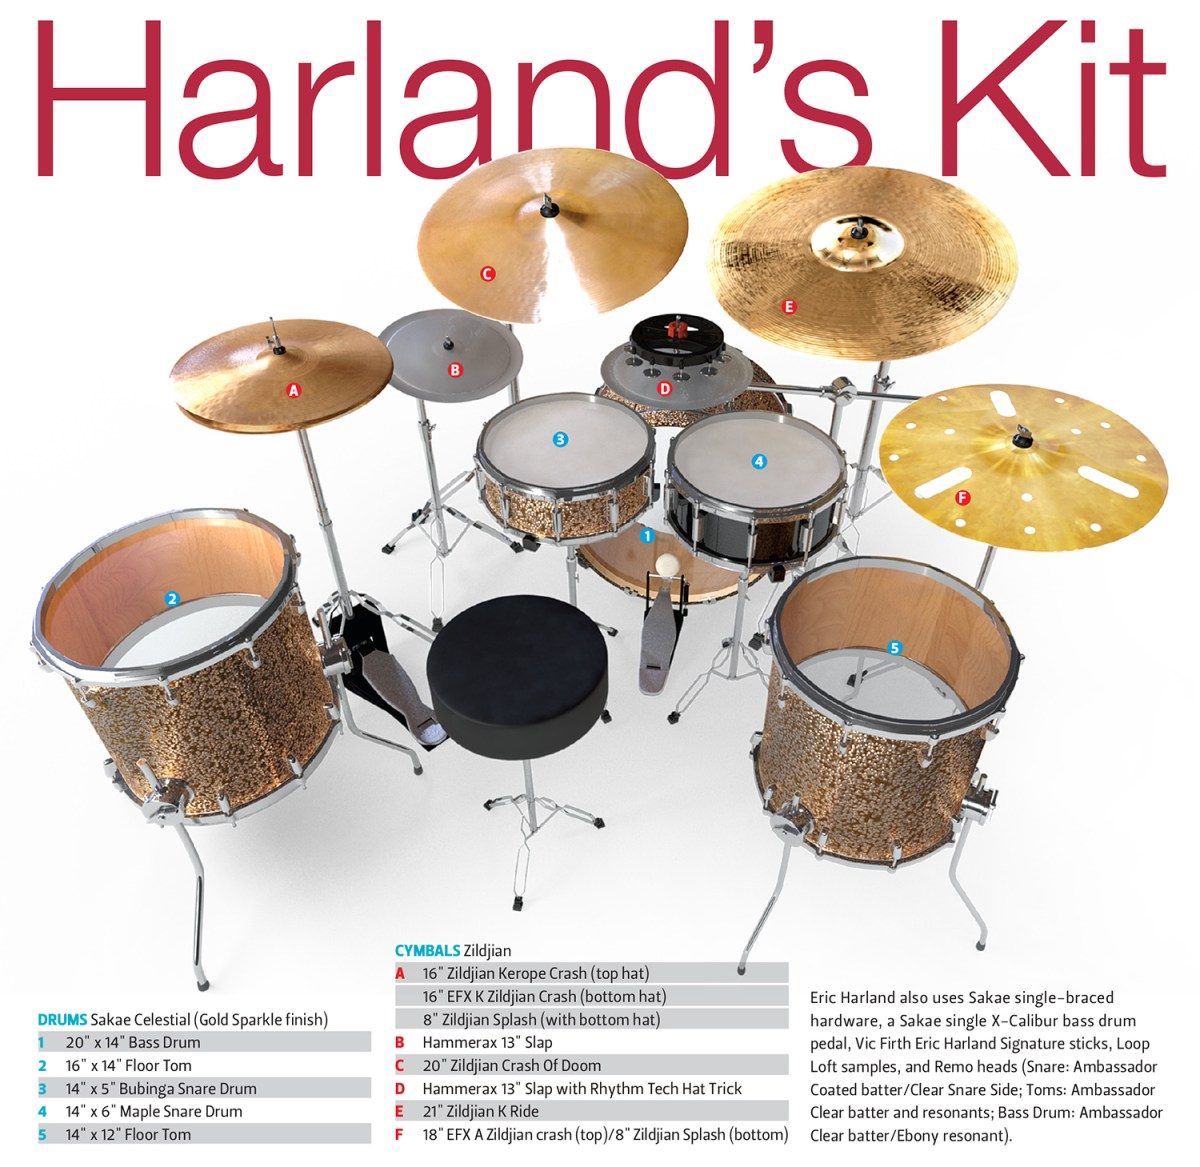 Harlands Kit